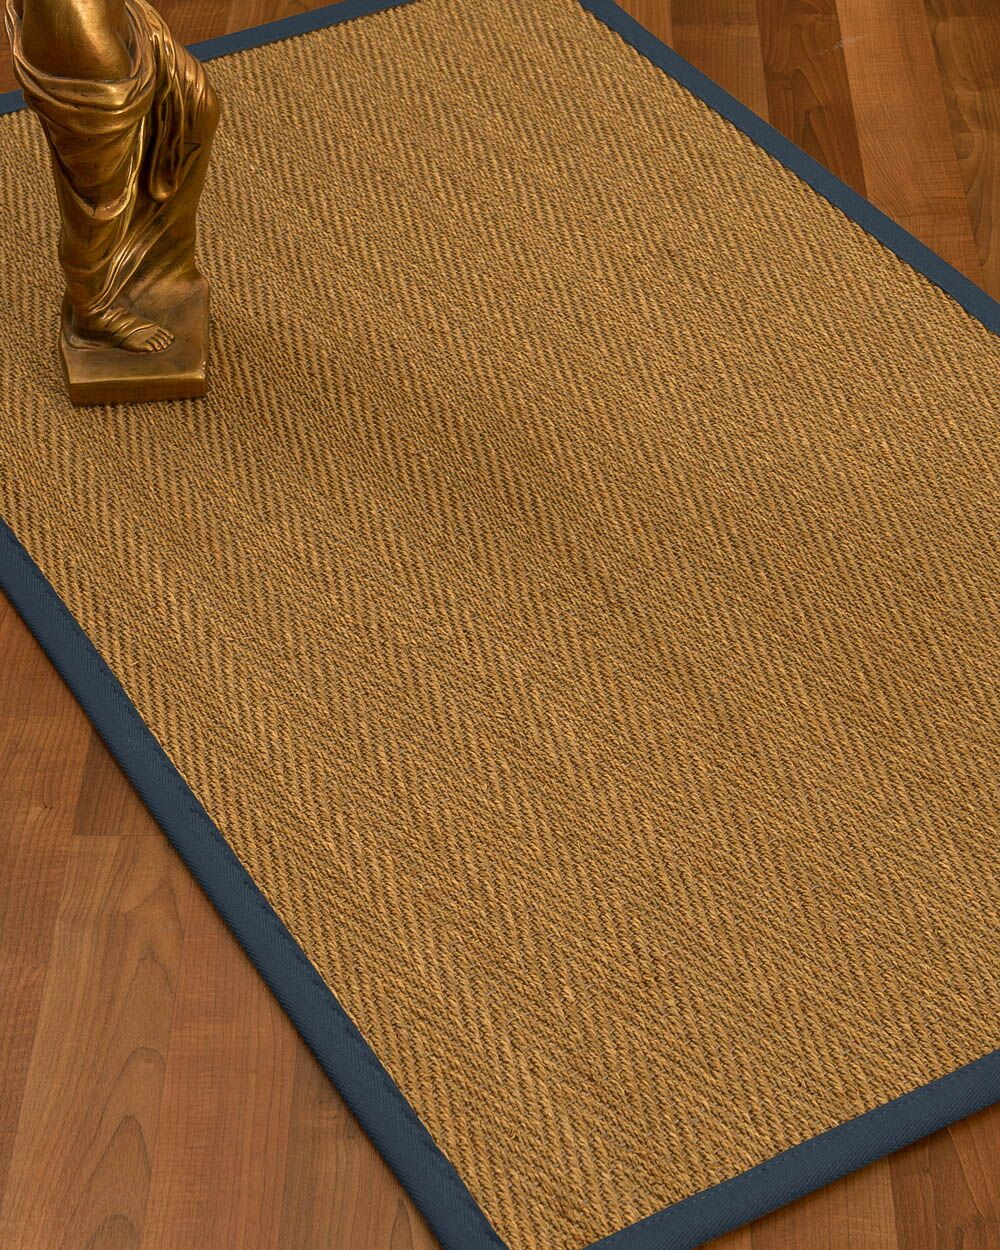 Mahaney Border Hand-Woven Beige/Marine Area Rug Rug Size: Rectangle 4' x 6', Rug Pad Included: Yes